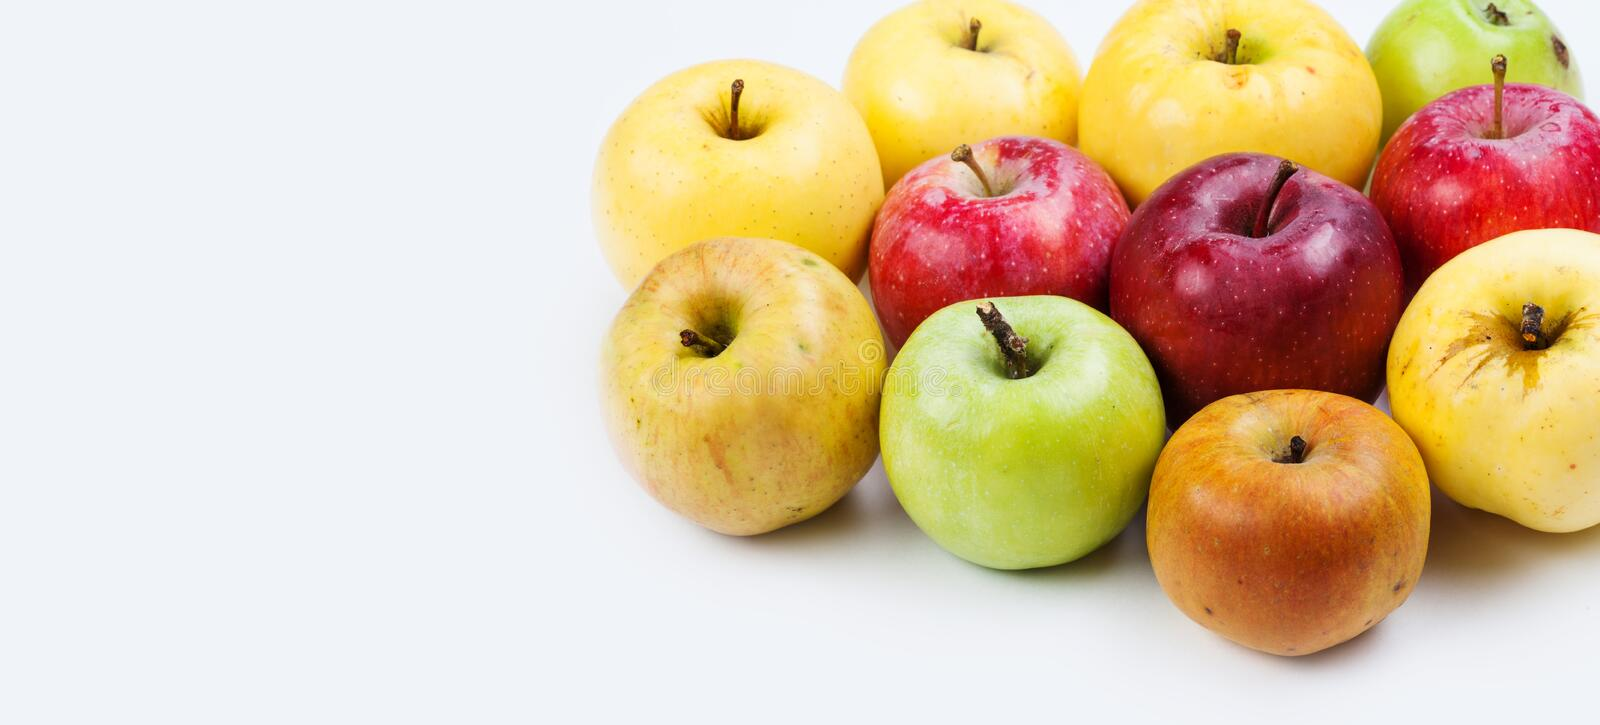 Natural, organic apple fruit. Difference concept. Various fresh ripe apples in different colors: red, yellow, green royalty free stock photos